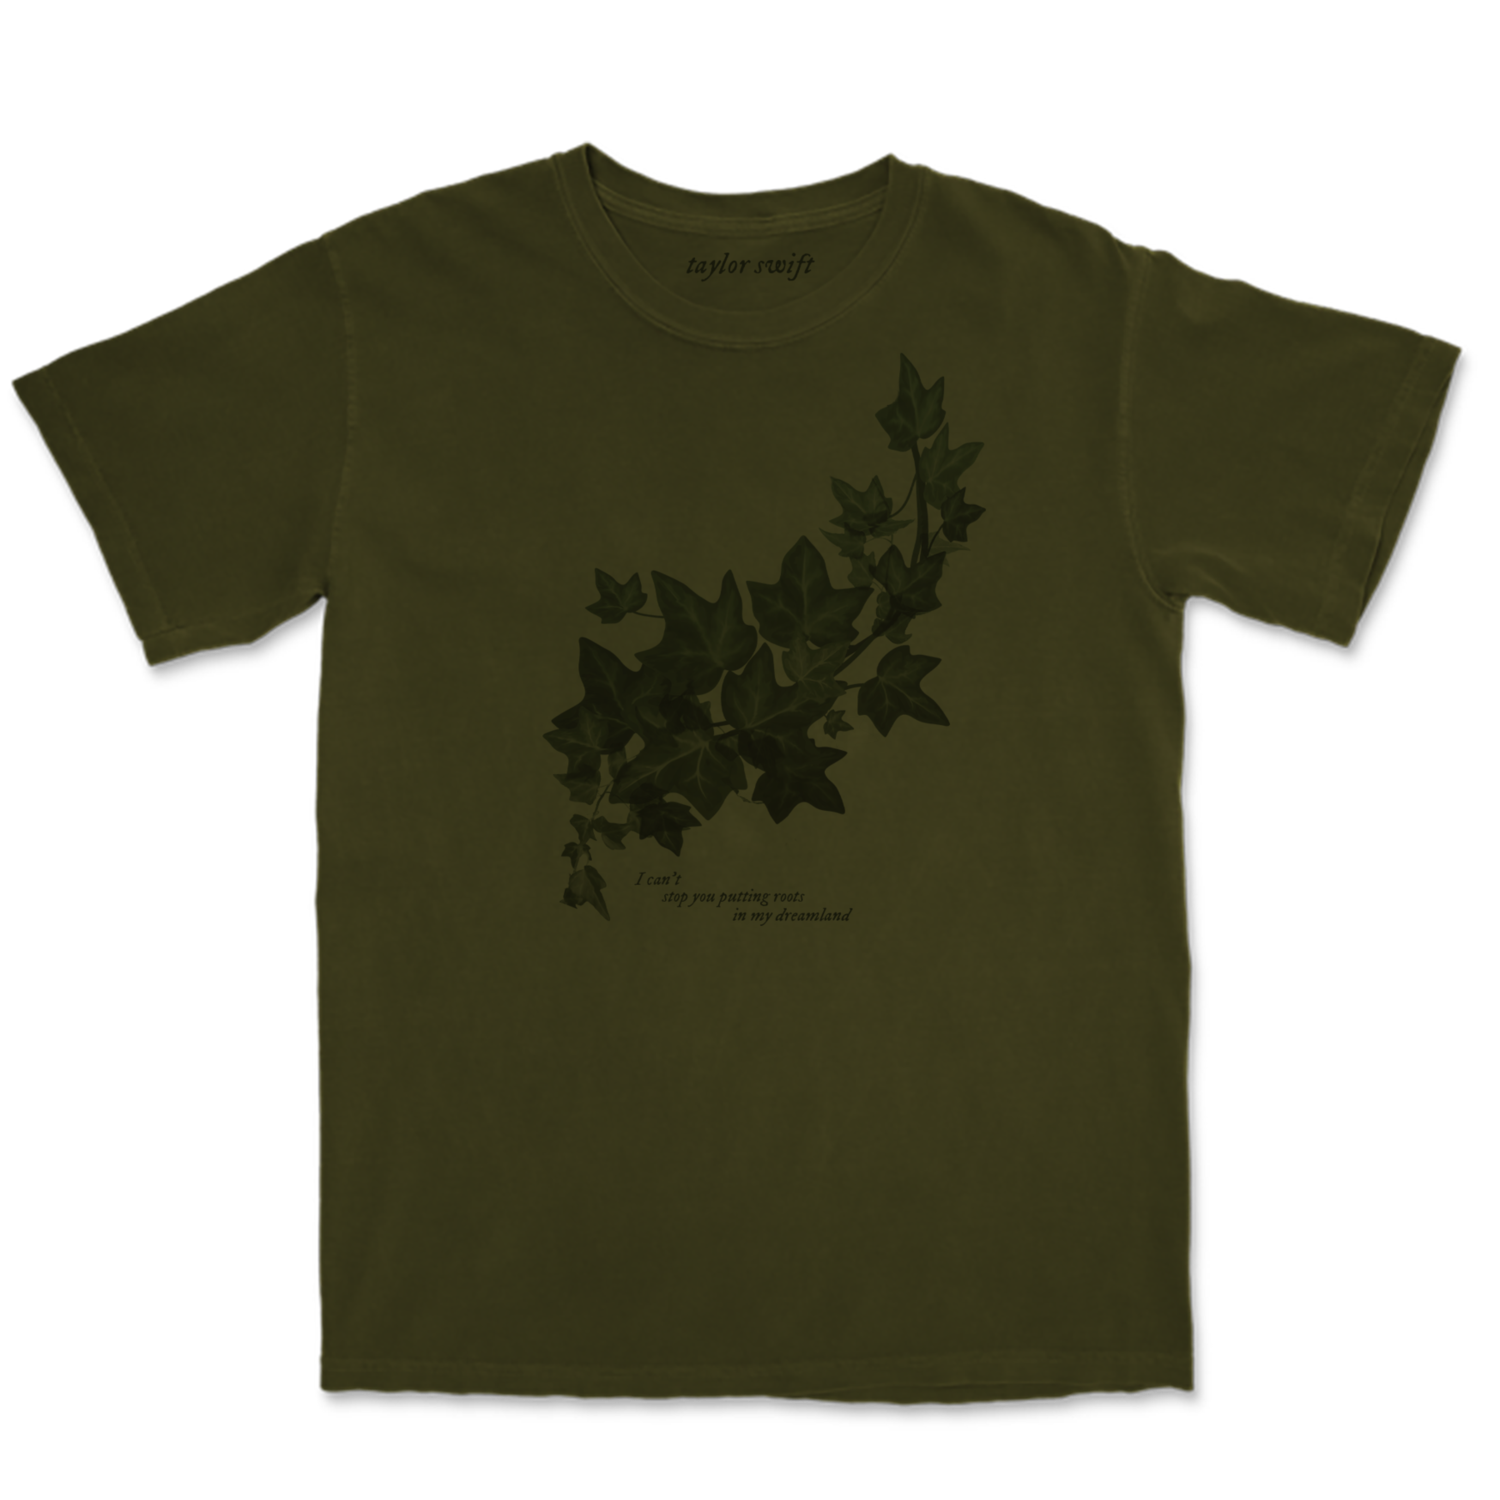 """the """"roots in my dreamland"""" t-shirt"""